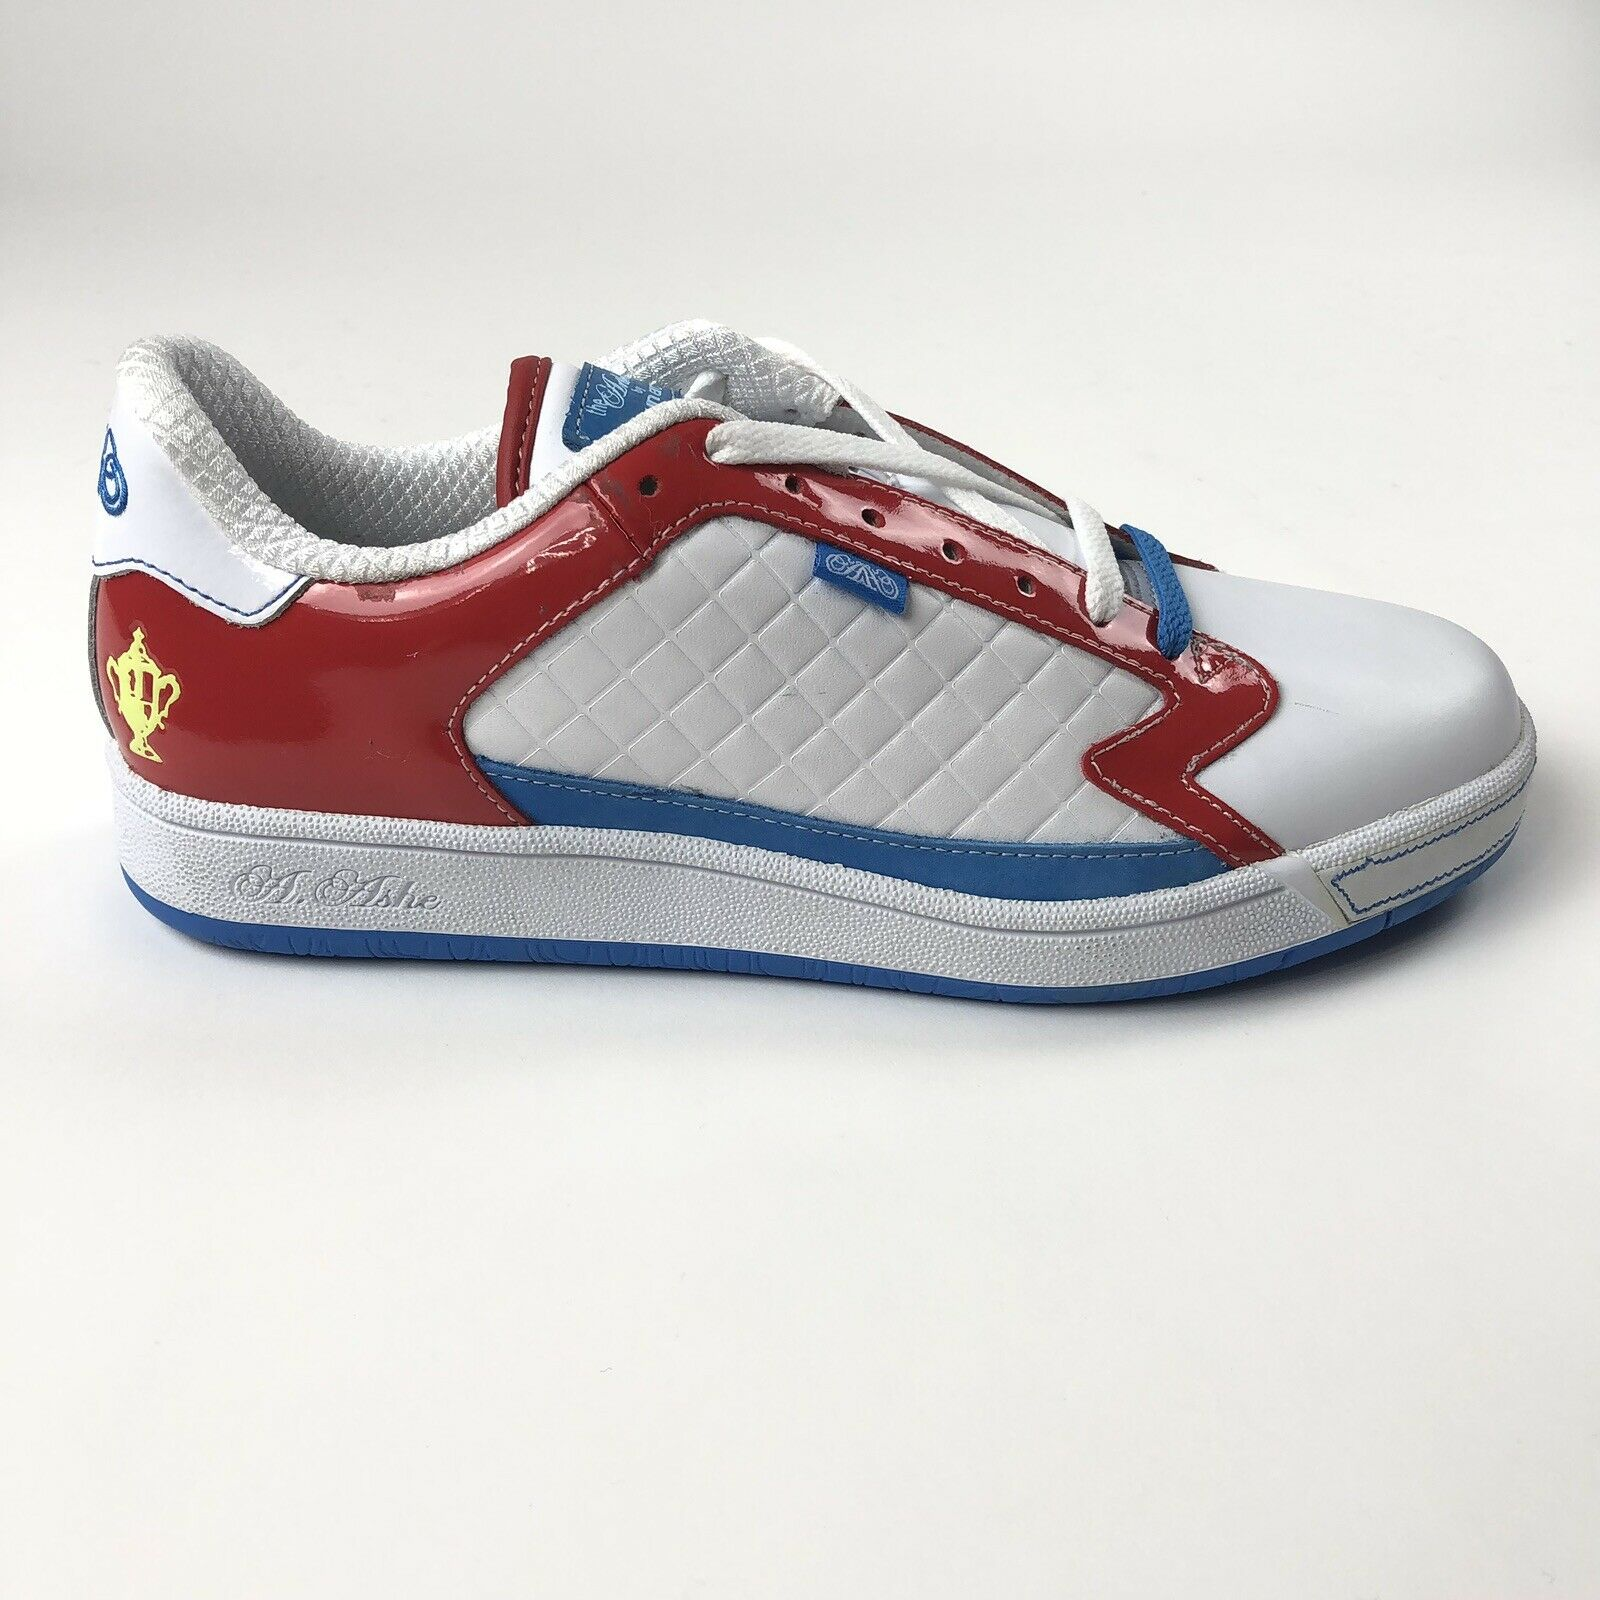 e92500971d51 Arthur Ashe 1 Run Athletic Vintage Mens 9.5 Trainers Tennis shoes White Red  bluee